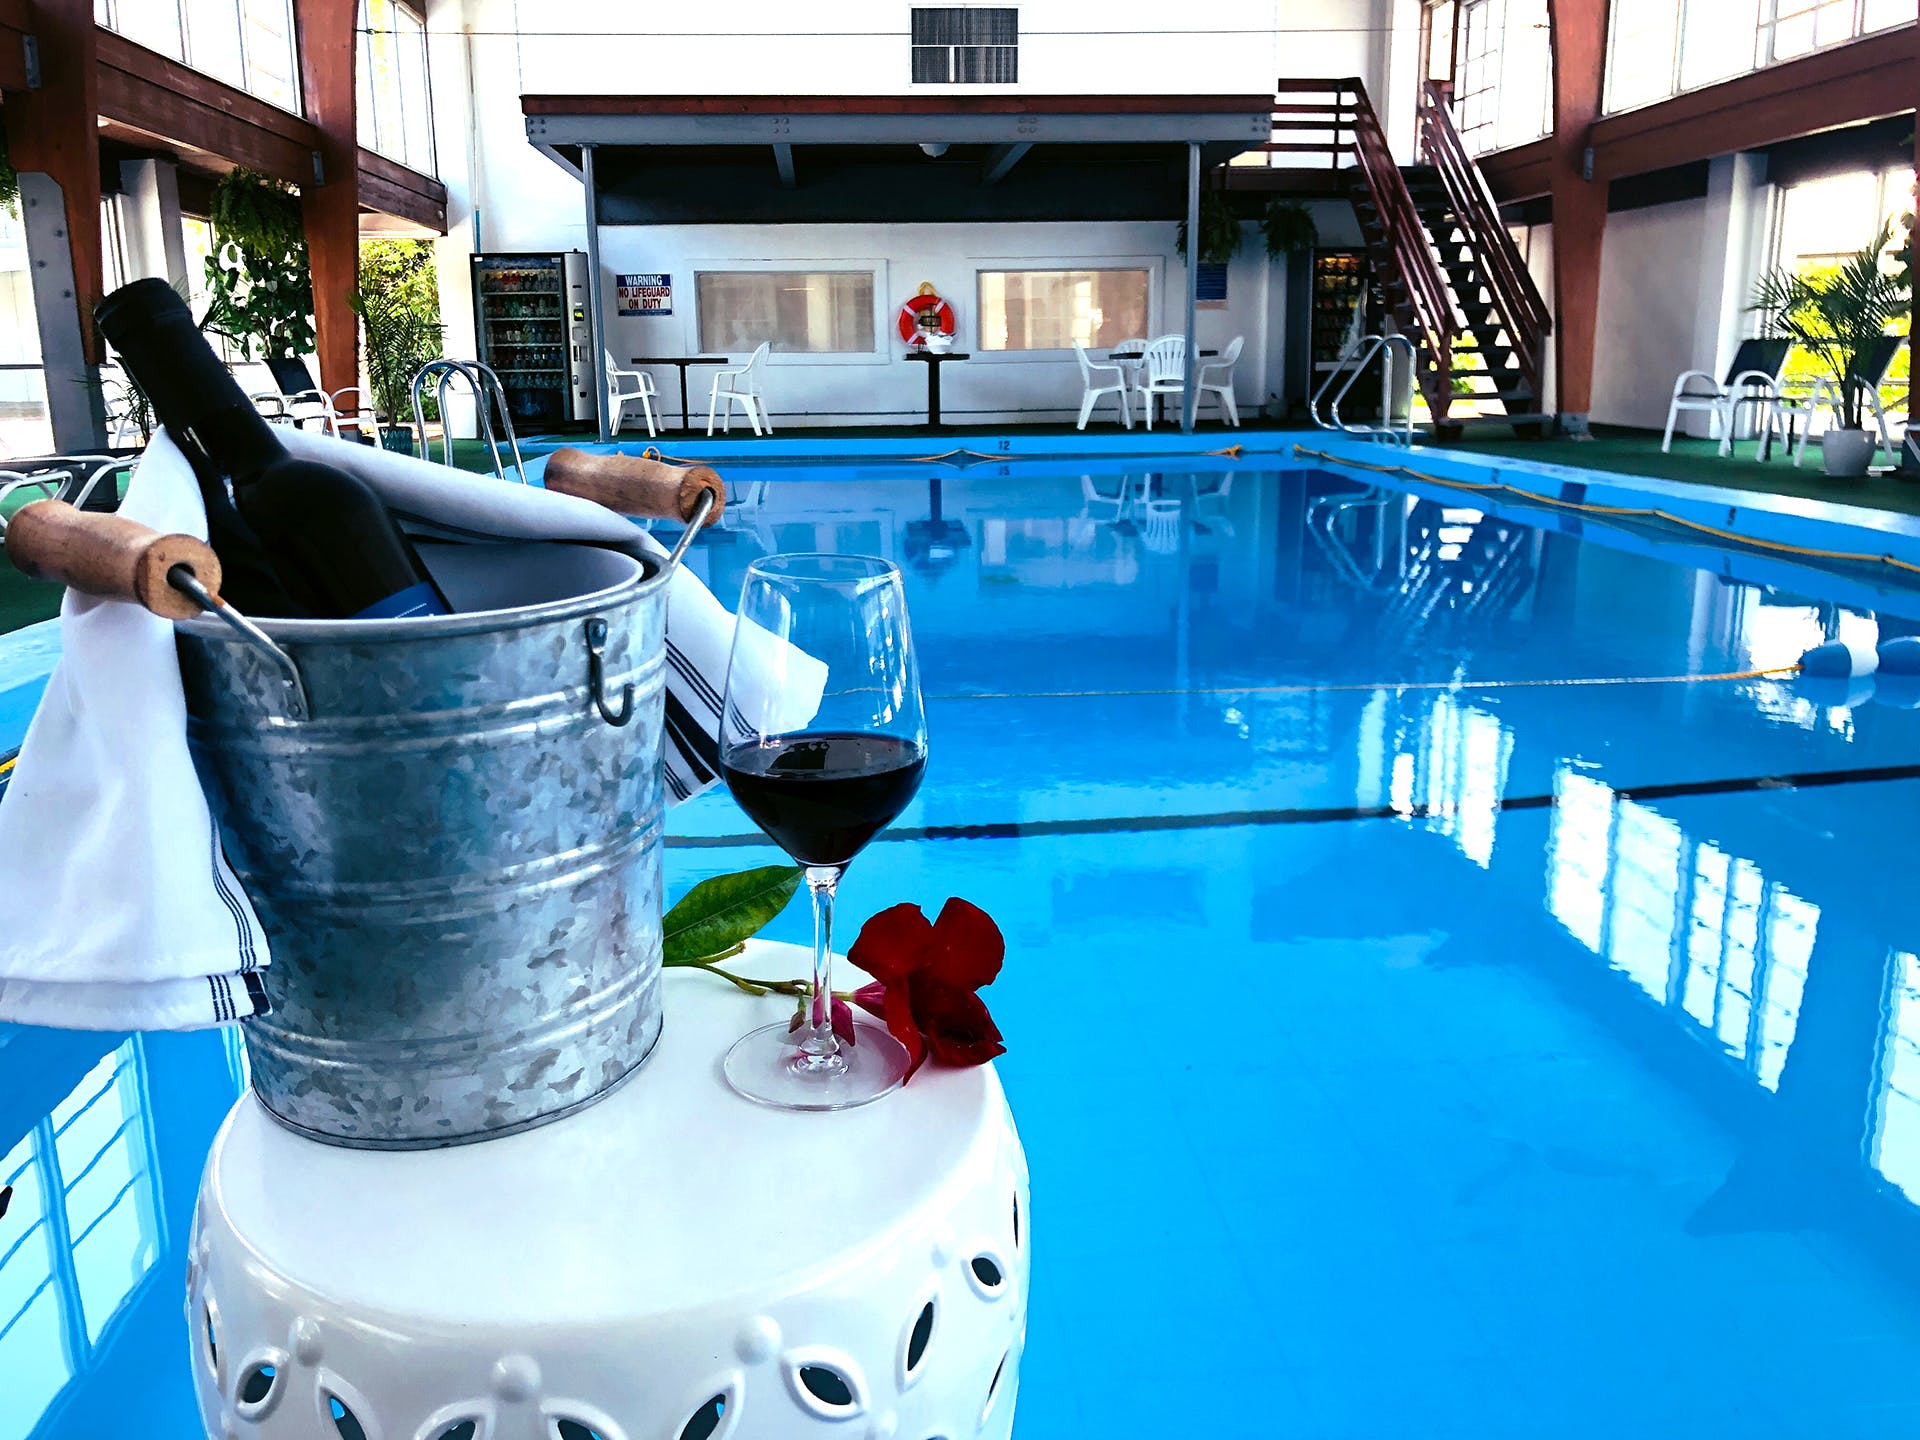 Hyannis Inn welcomes you to enjoy our newly renovated indoor pool to cool off after a day on Main Street, Hyannis 1